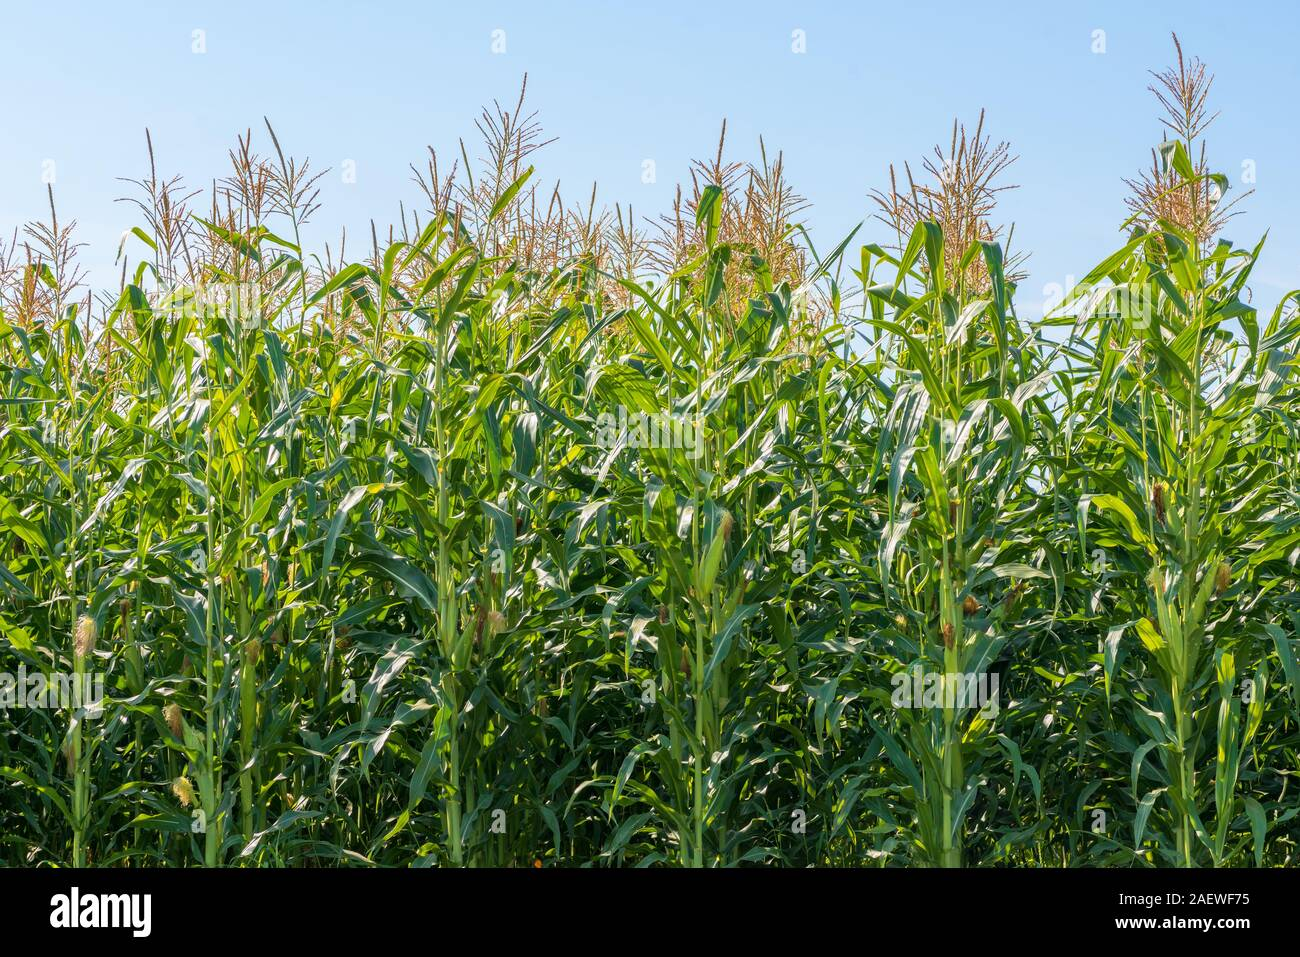 Corn Plant High Resolution Stock Photography and Images - Alamy